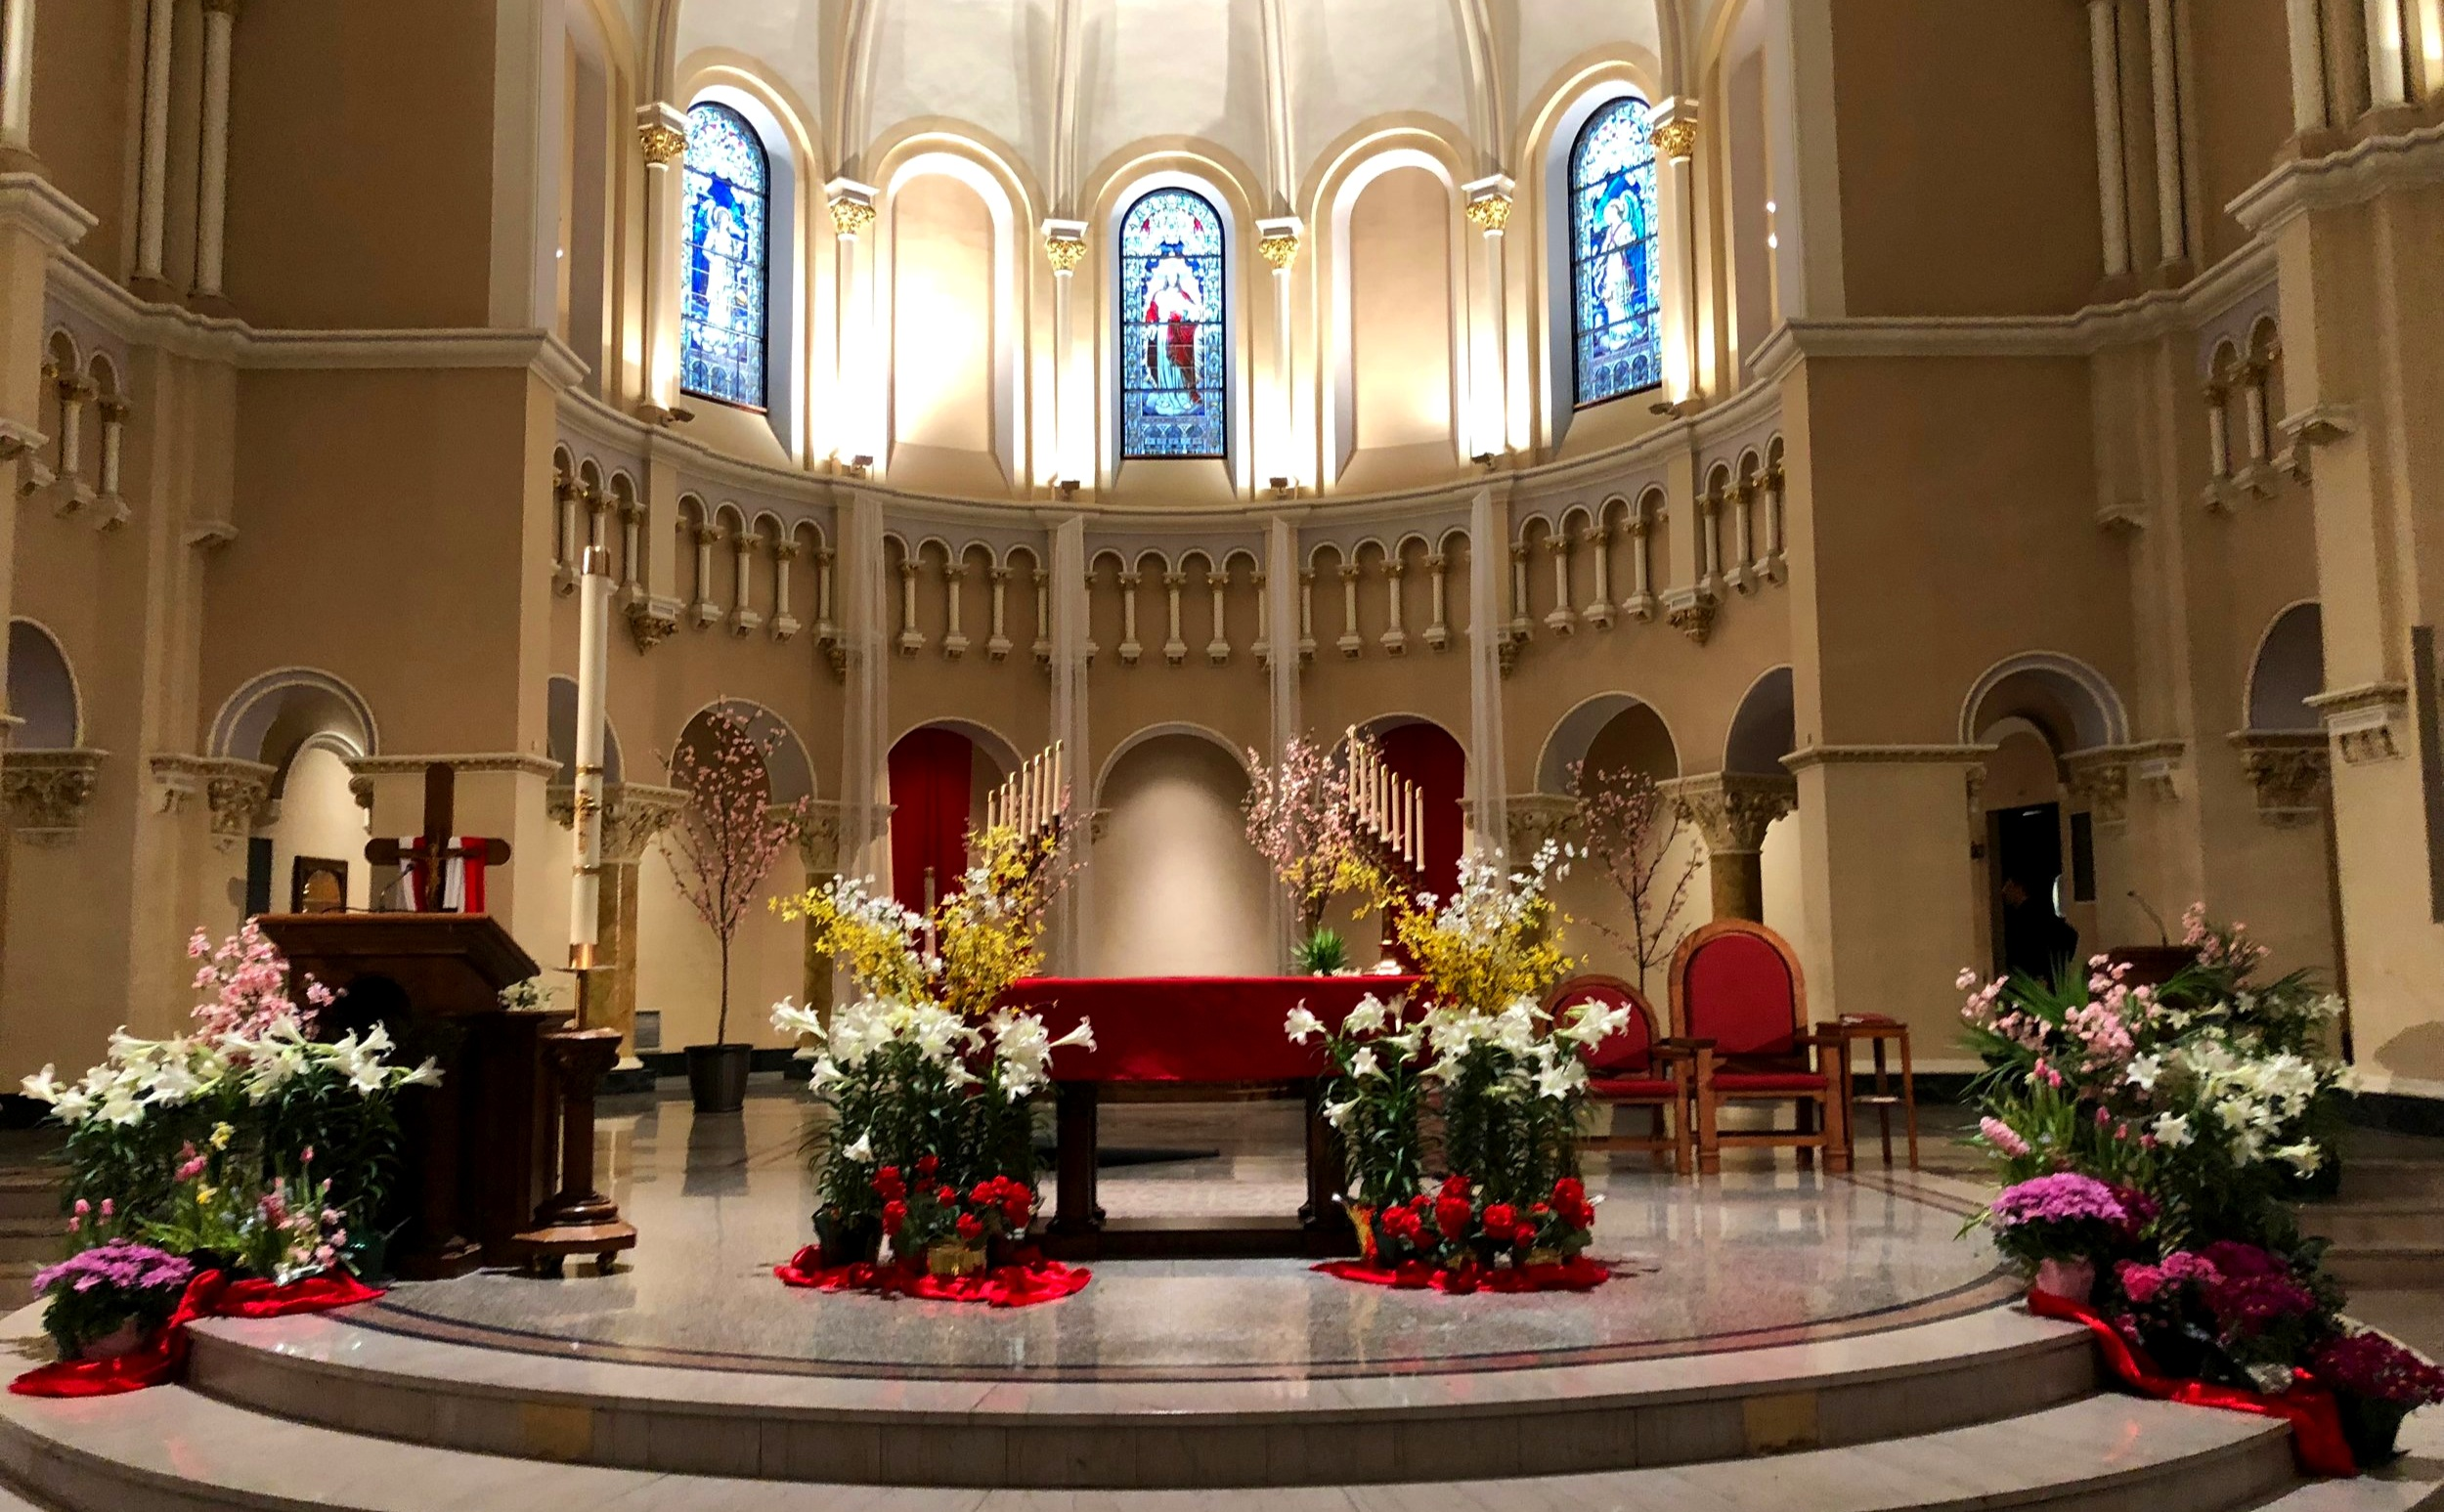 Flowers around the altar for Confirmation Mass, Easter Season 2018.